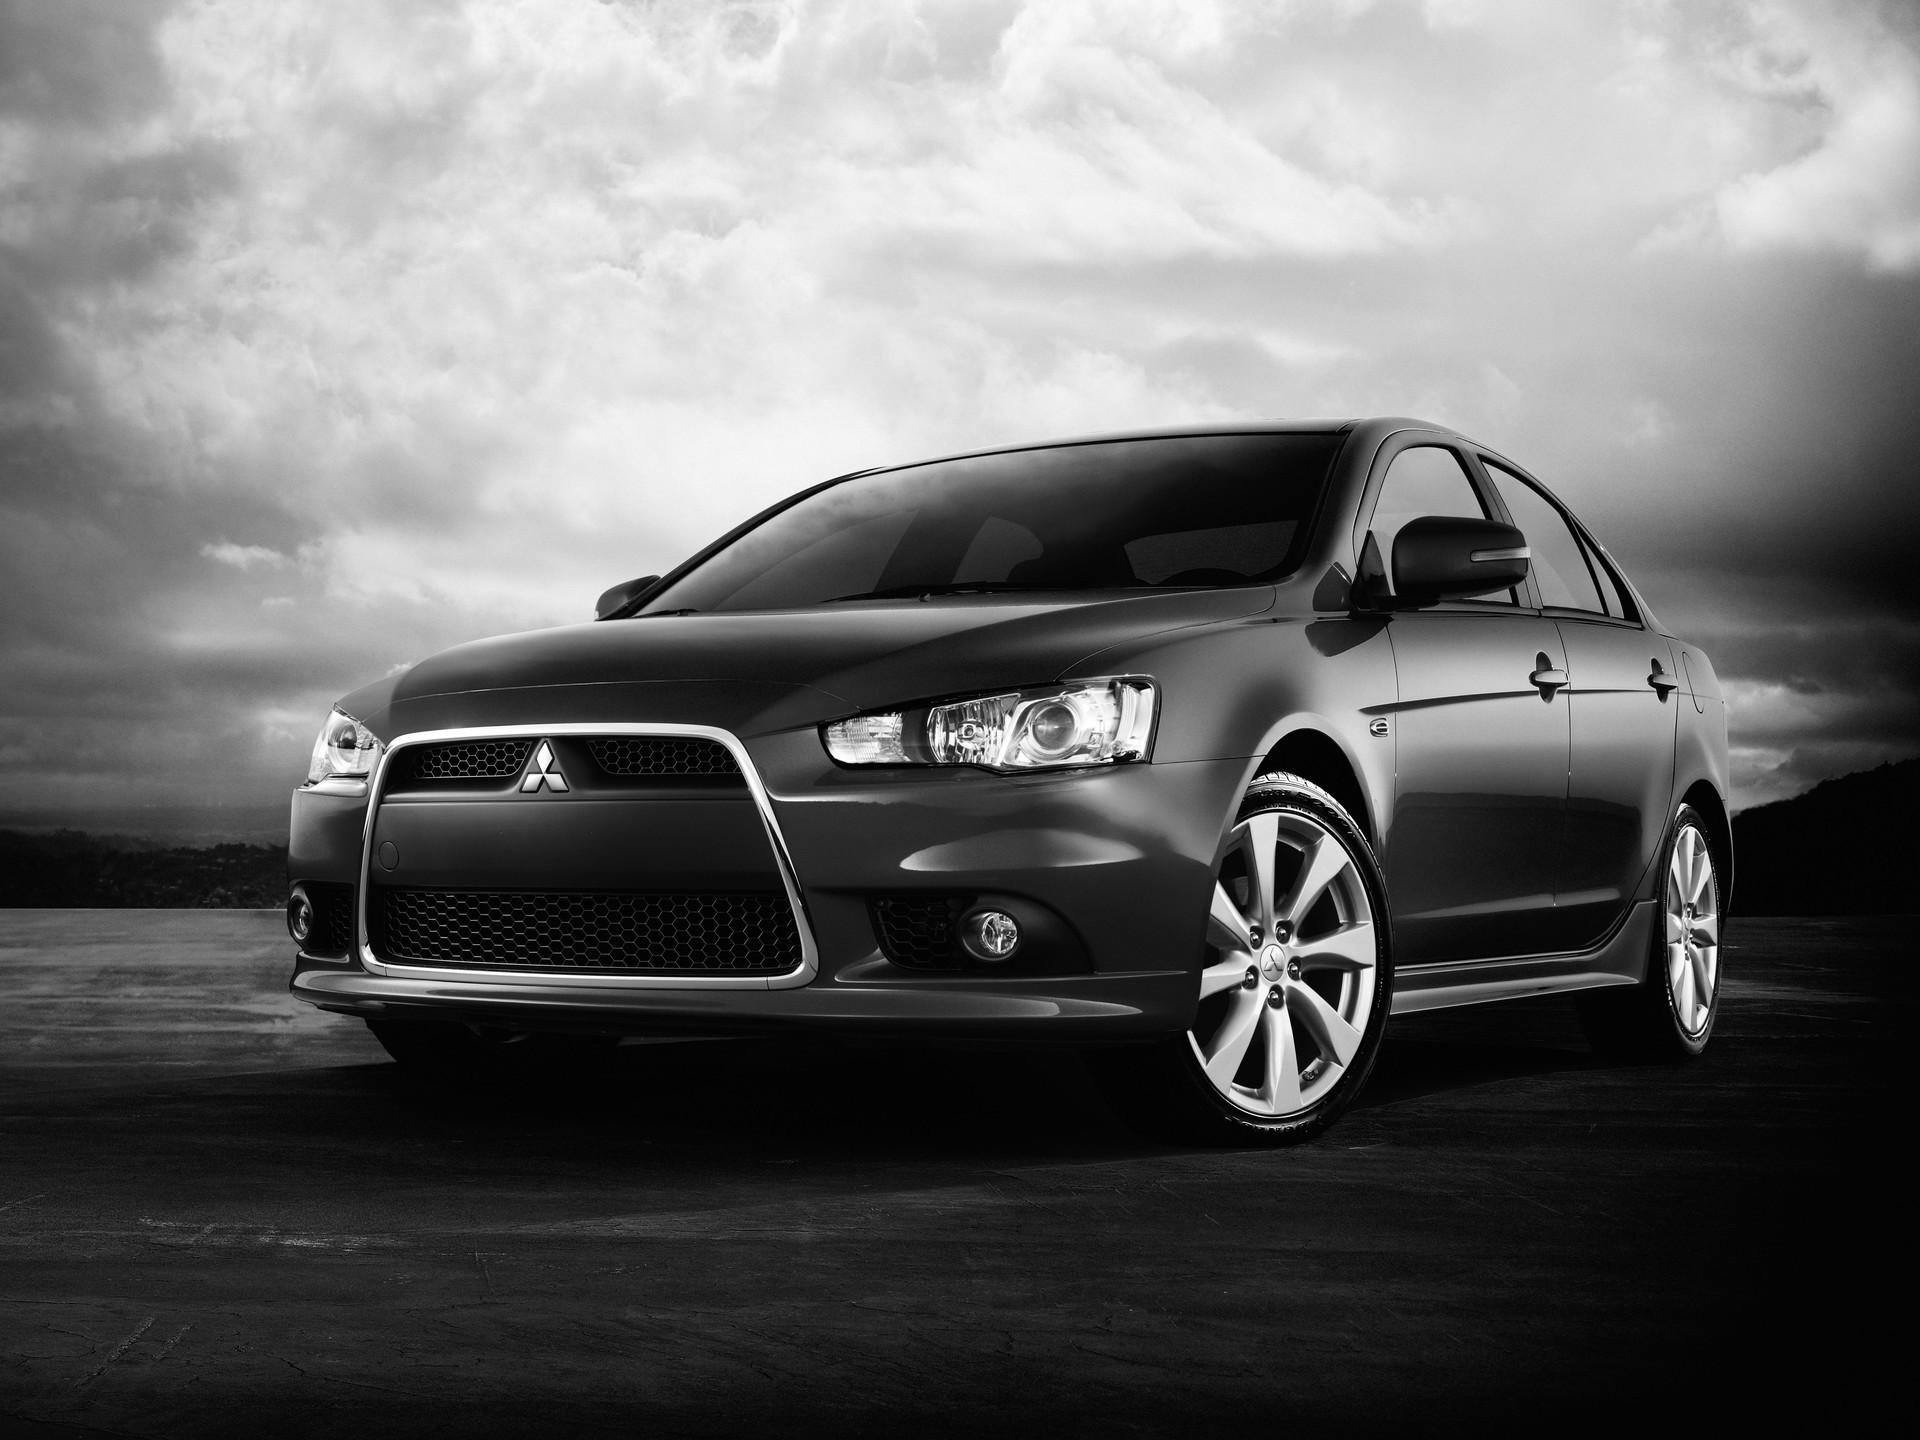 2015 Mitsubishi Lancer Evolution Images 2015 Mitsubishi Lancer Evolution  Wallpaper